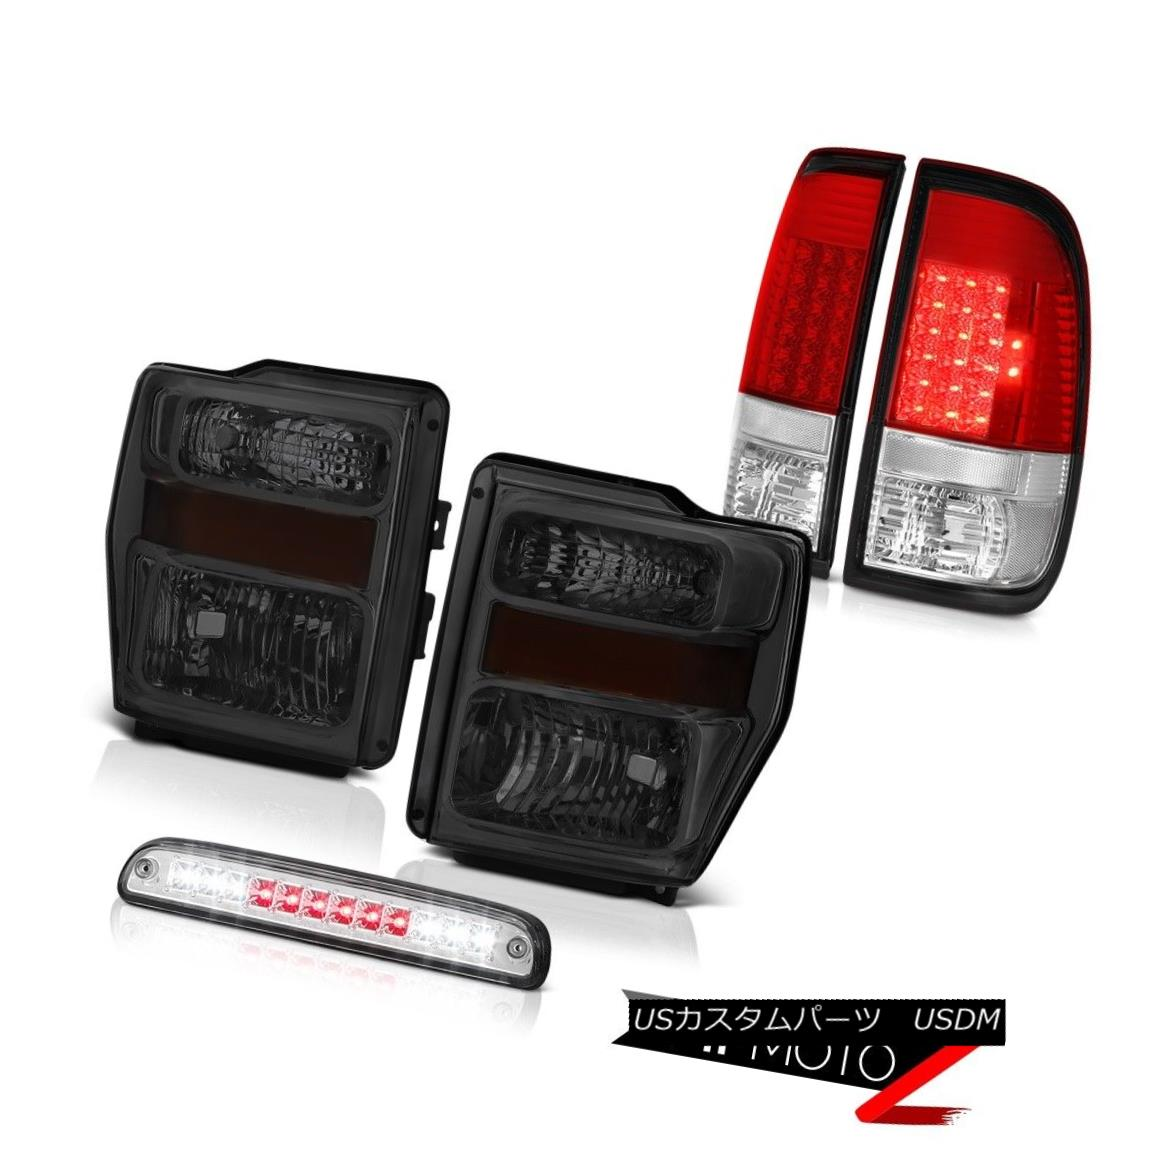 ヘッドライト 08-10 F250 Triton V8 Smoke Tinted Headlamps Red LED Tail light Third Brake Cargo 08-10 F250 Triton V8煙がかかったヘッドランプ赤LEDテールライトThird Brake Cargo